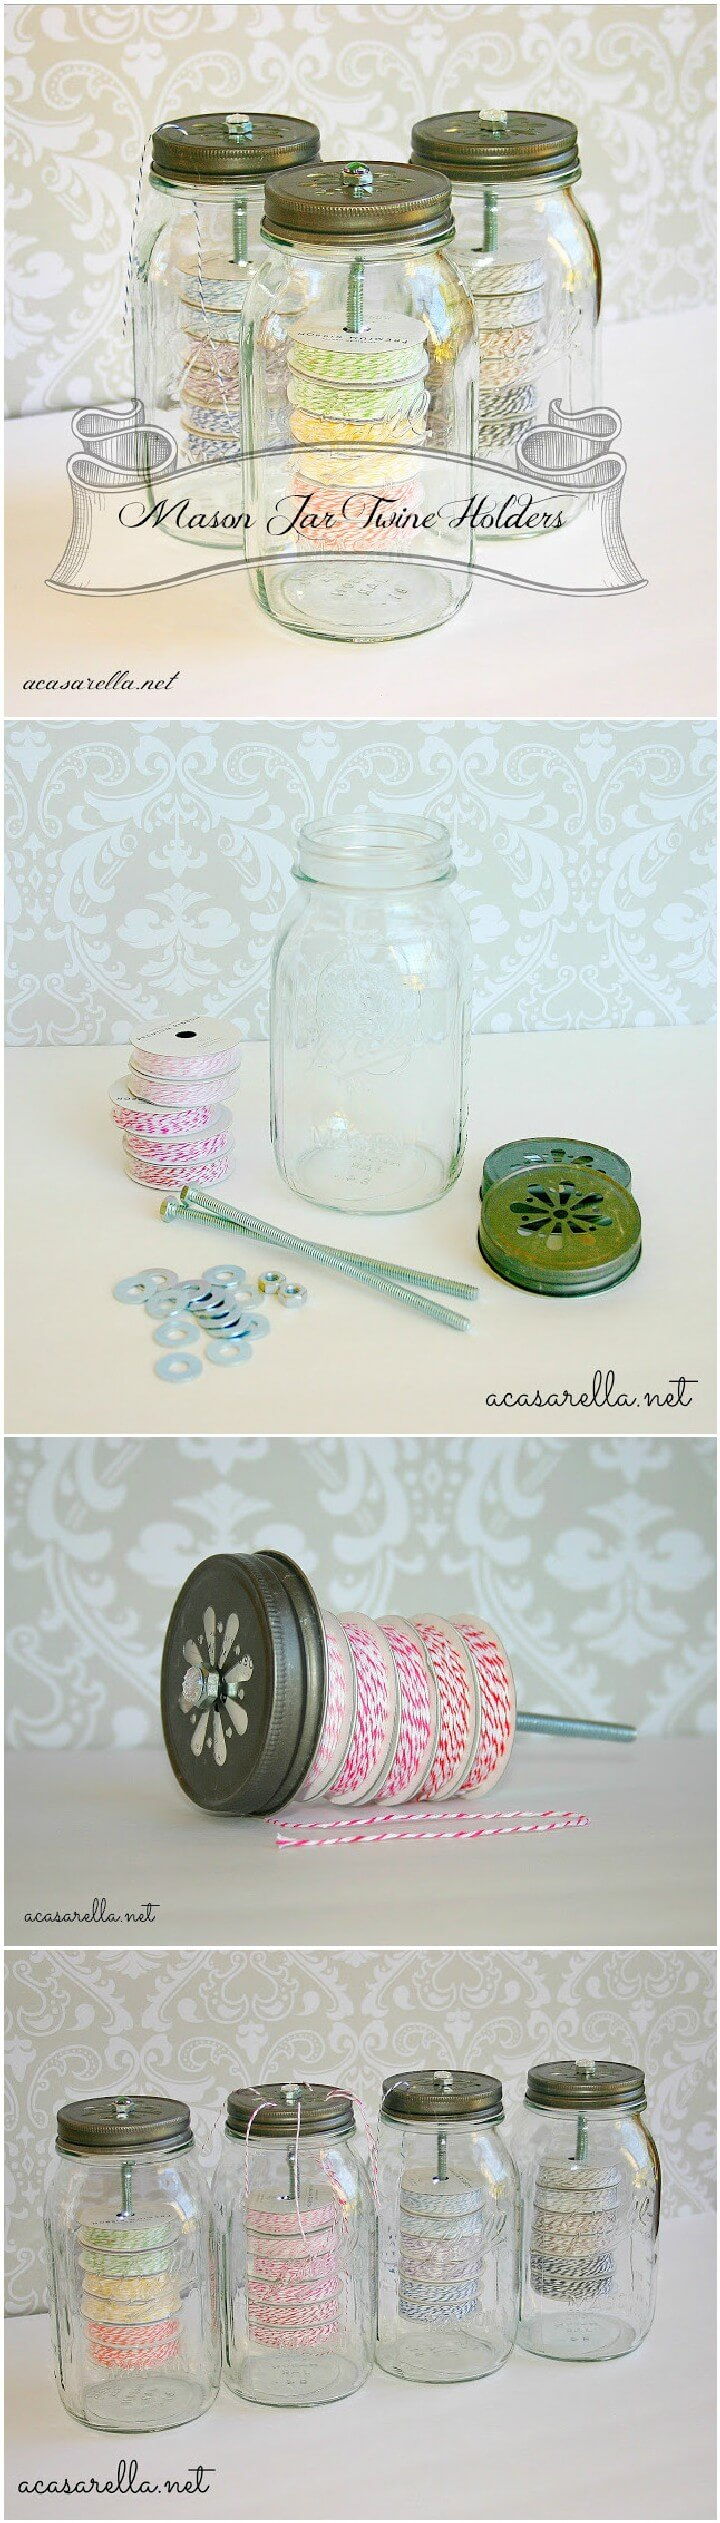 DIY Mason Jar Twine Holders and Dispensers